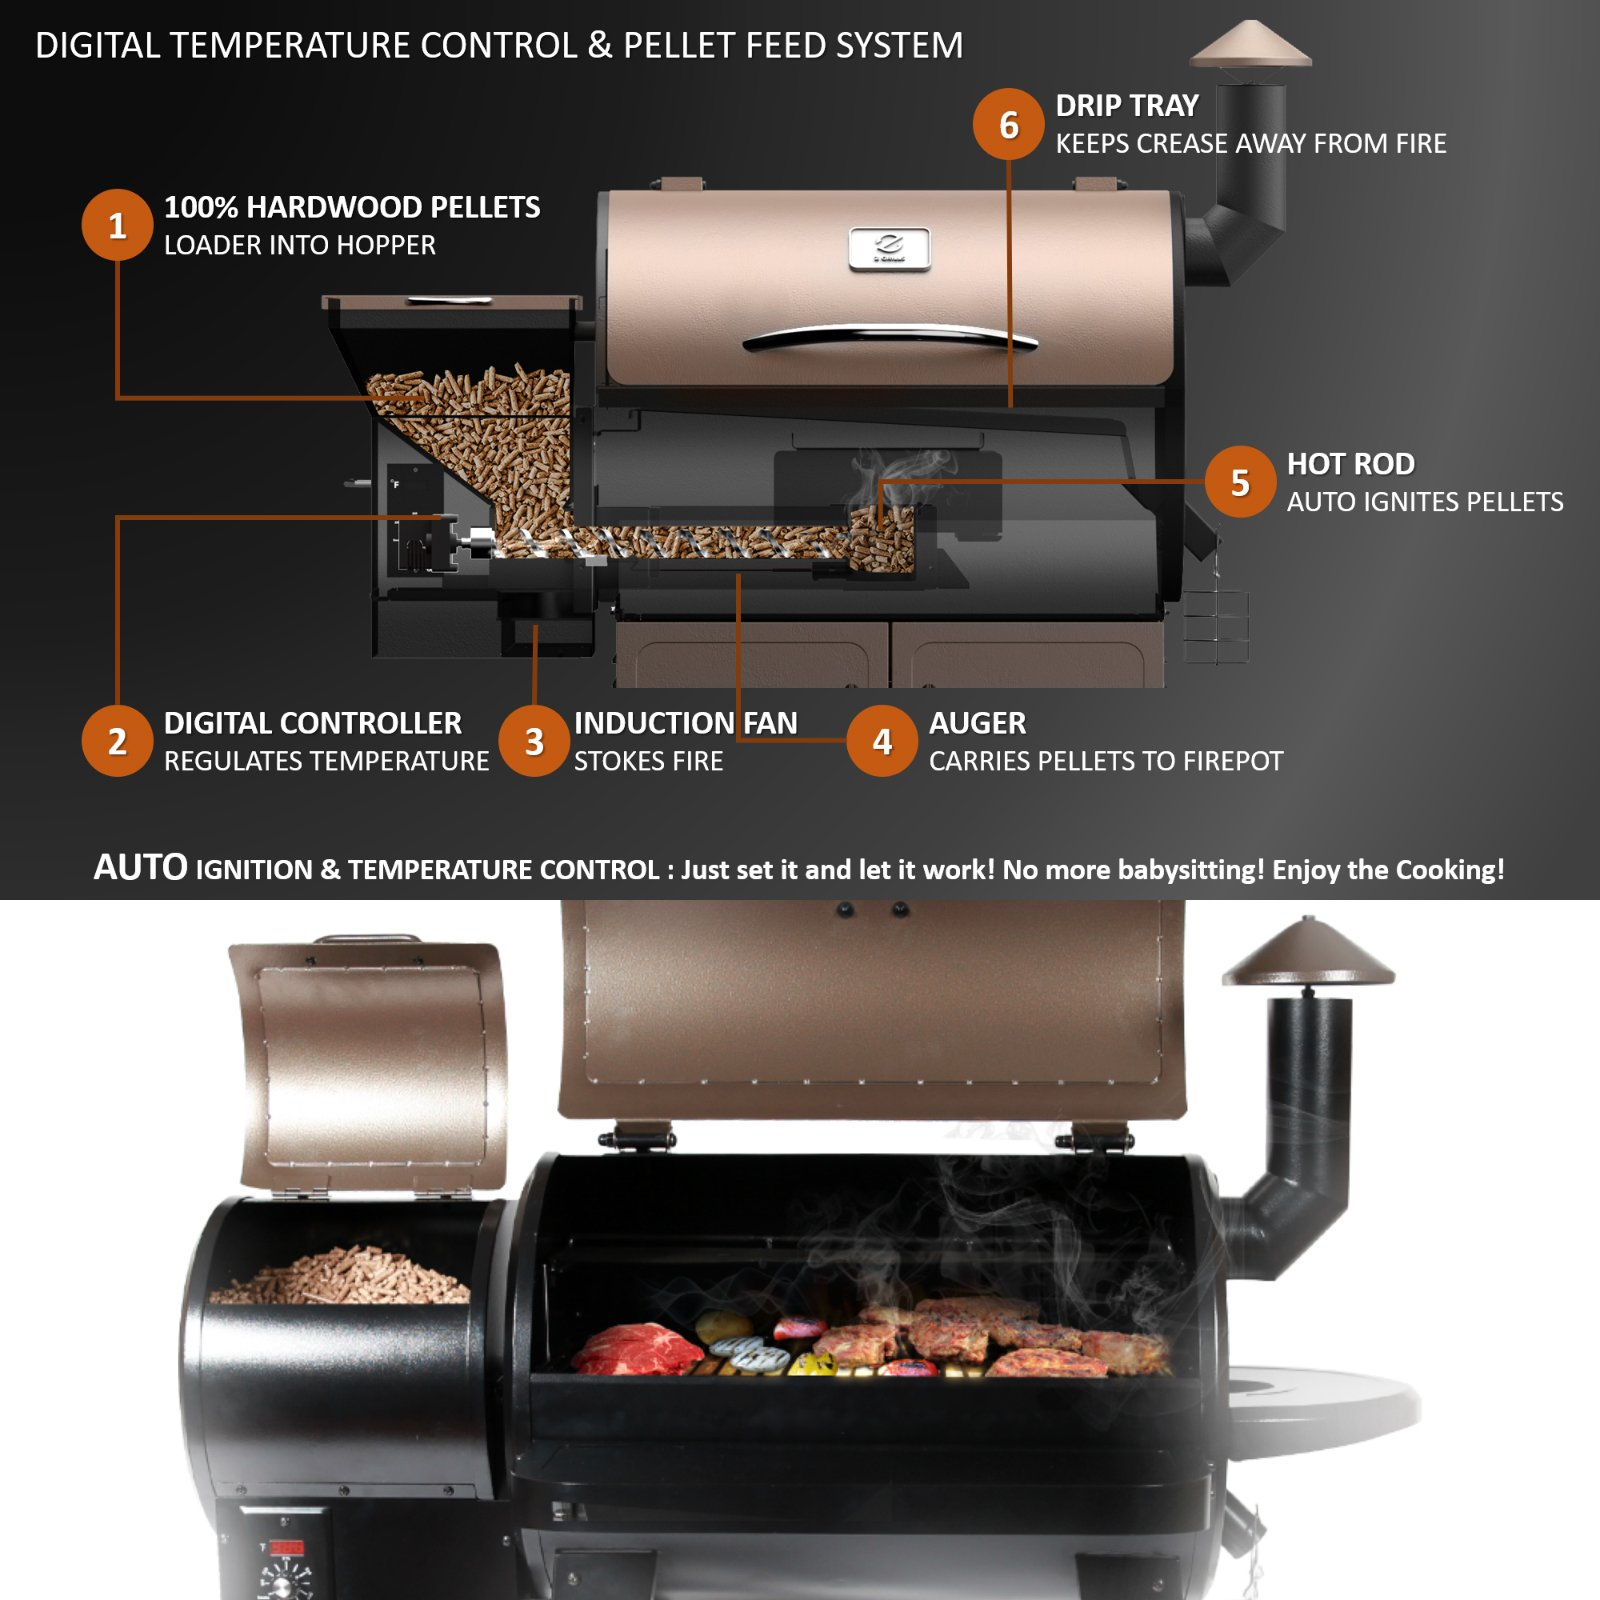 Z GRILLS ZPG-550B 2019 Upgrade Model Wood Pellet Grill & Smoker 6 in 1 BBQ Grill Auto Temperature Control, 550 sq Inch Deal, Black by Z GRILLS (Image #2)